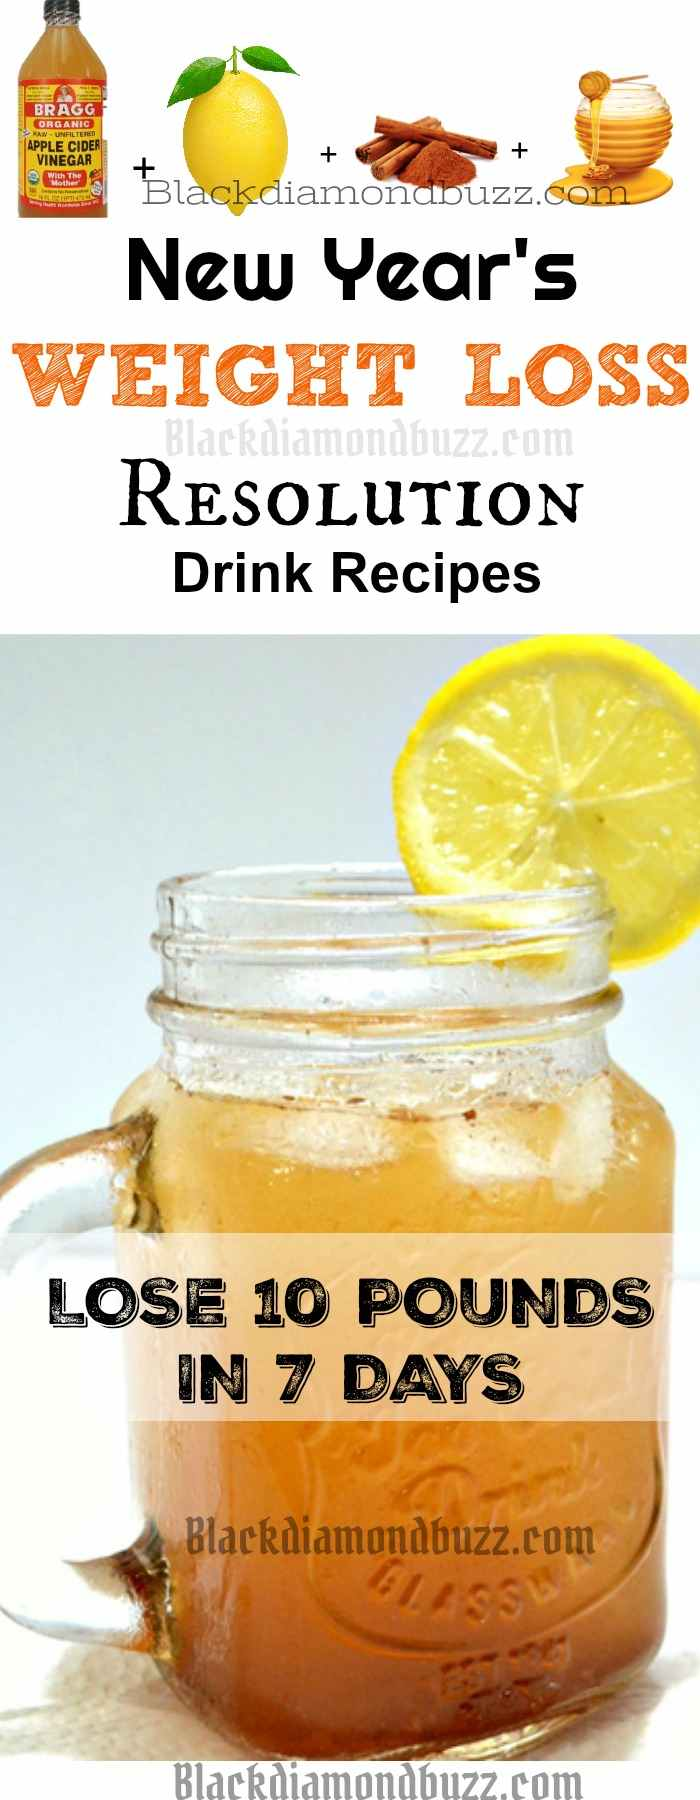 New Year Weight Loss Resolution Drink Recipes Lose 10 pounds in 7 Days